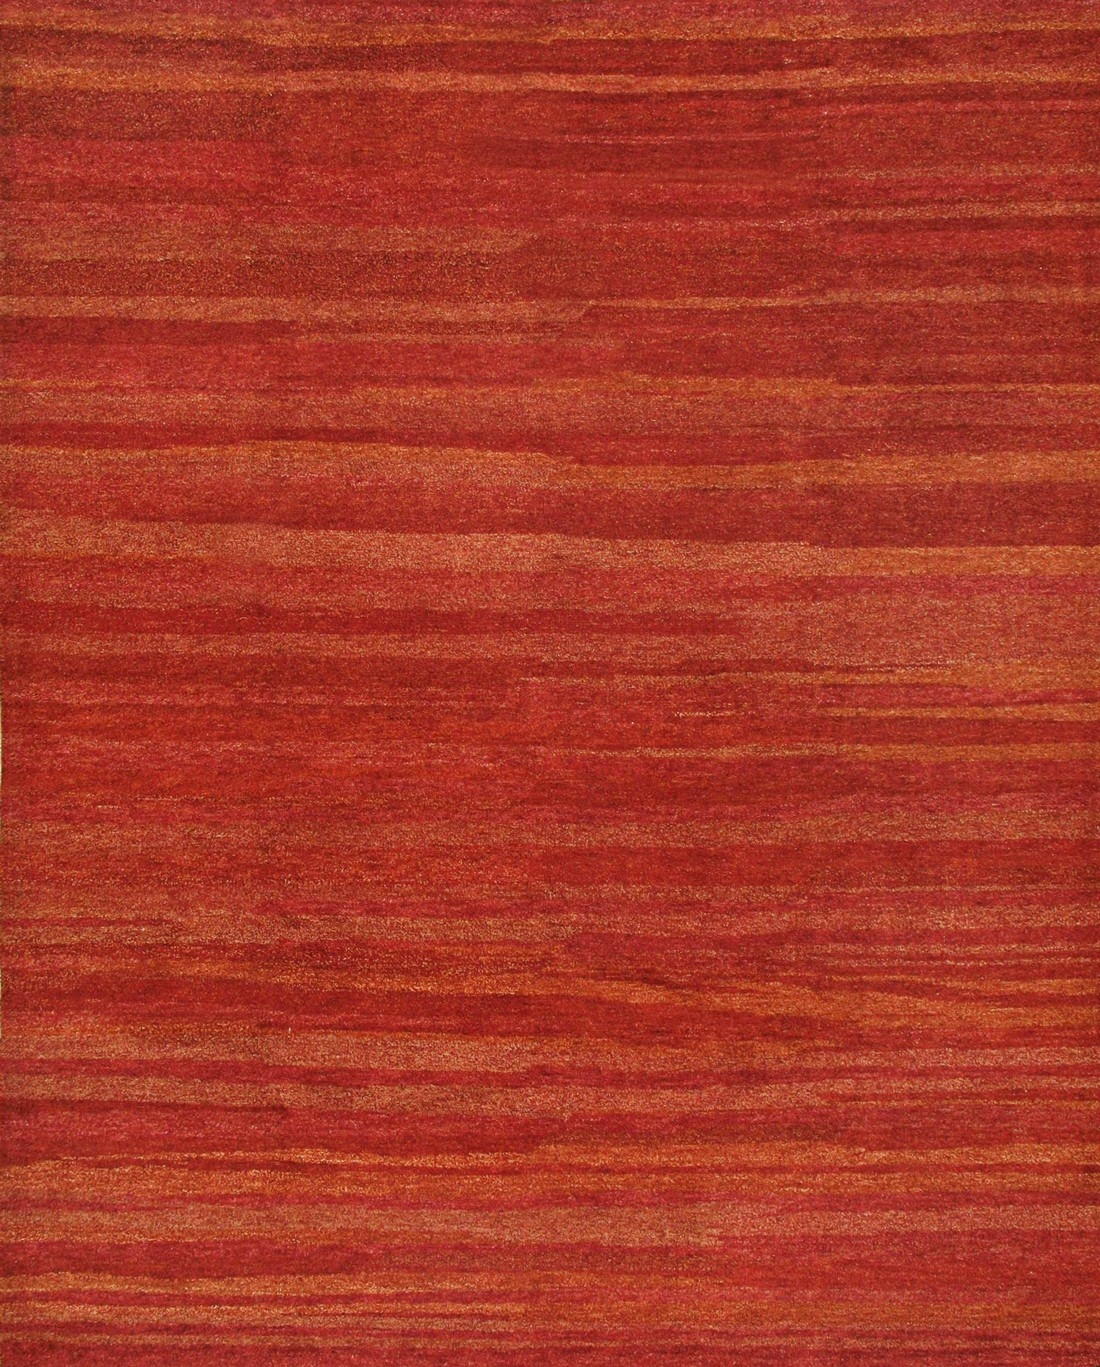 Red Wool Rugs Uk Roselawnlutheran With Regard To Red Wool Rugs (Image 13 of 15)